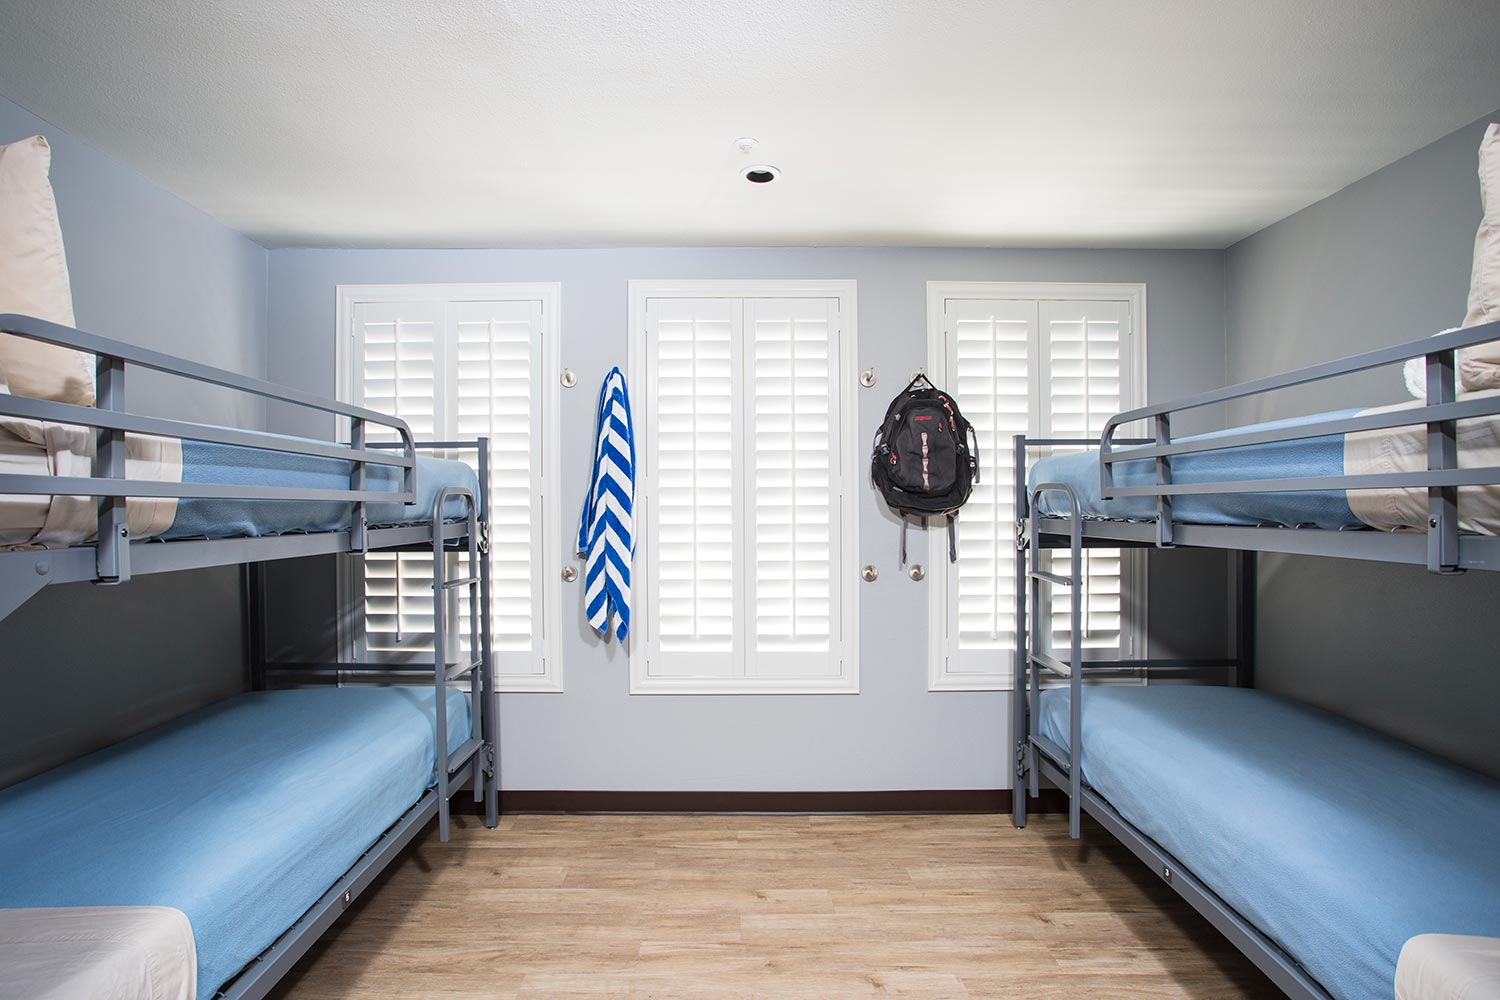 Room view with four bunk beds.